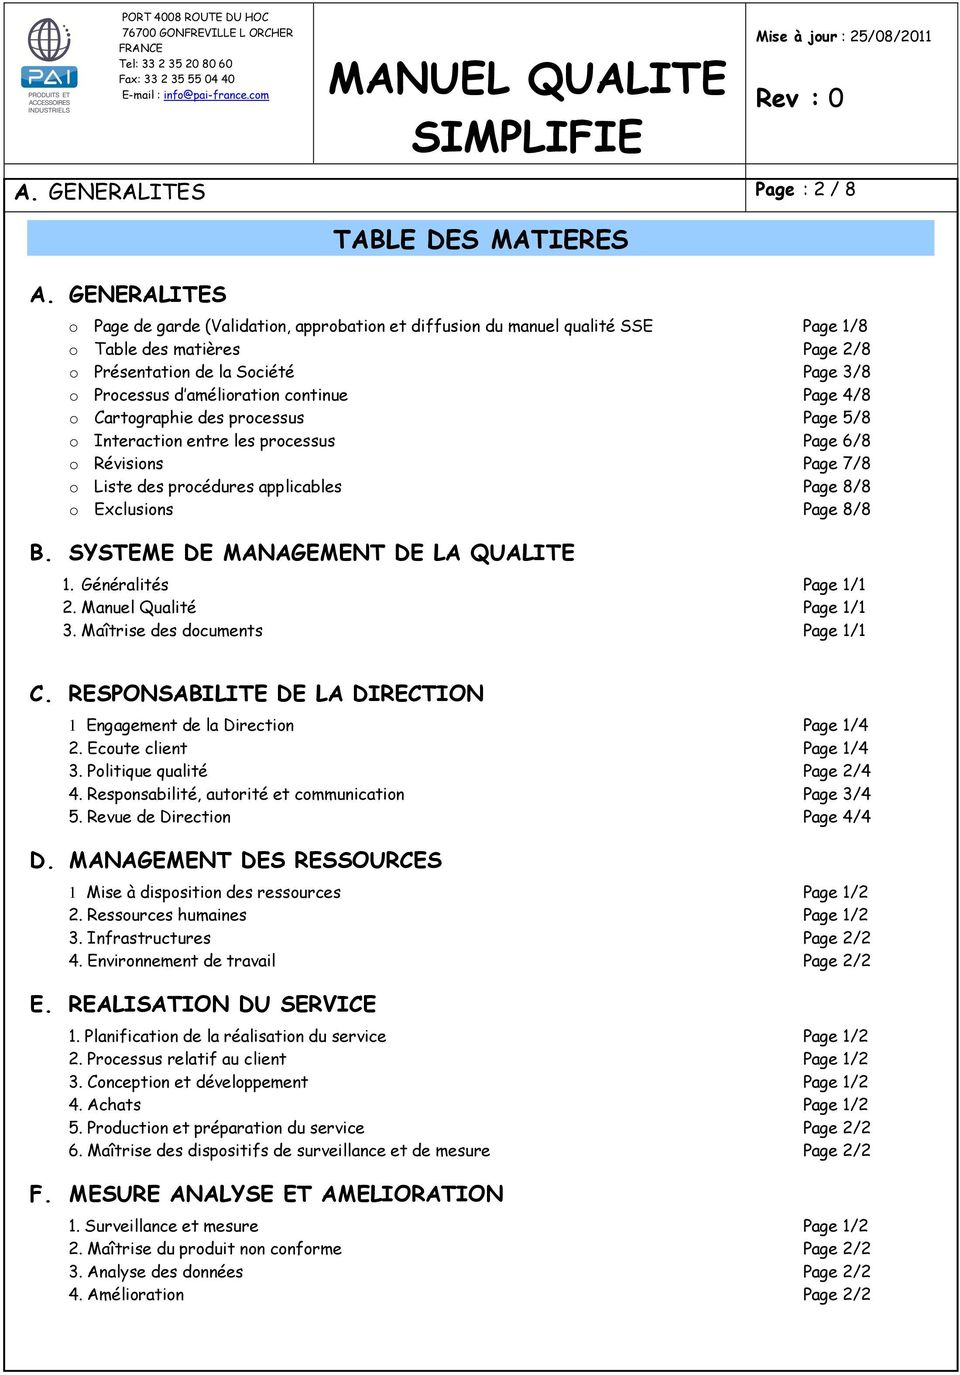 amélioration continue Page 4/8 o Cartographie des processus Page 5/8 o Interaction entre les processus Page 6/8 o Révisions Page 7/8 o Liste des procédures applicables Page 8/8 o Exclusions Page 8/8